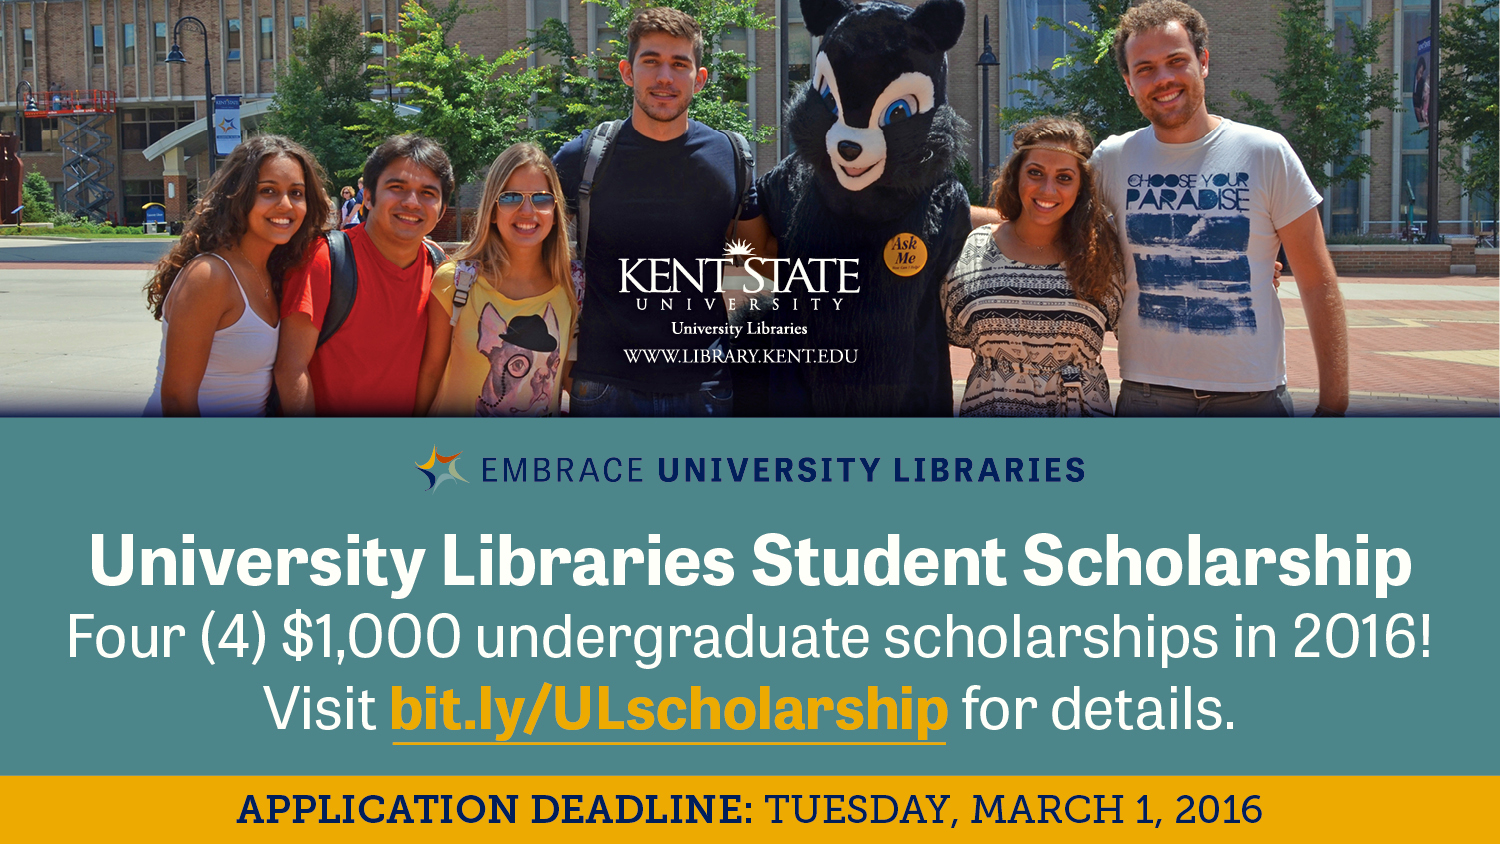 Show more about Four (4) $1,000 undergraduate, University Libraries Student Scholarships in 2016!